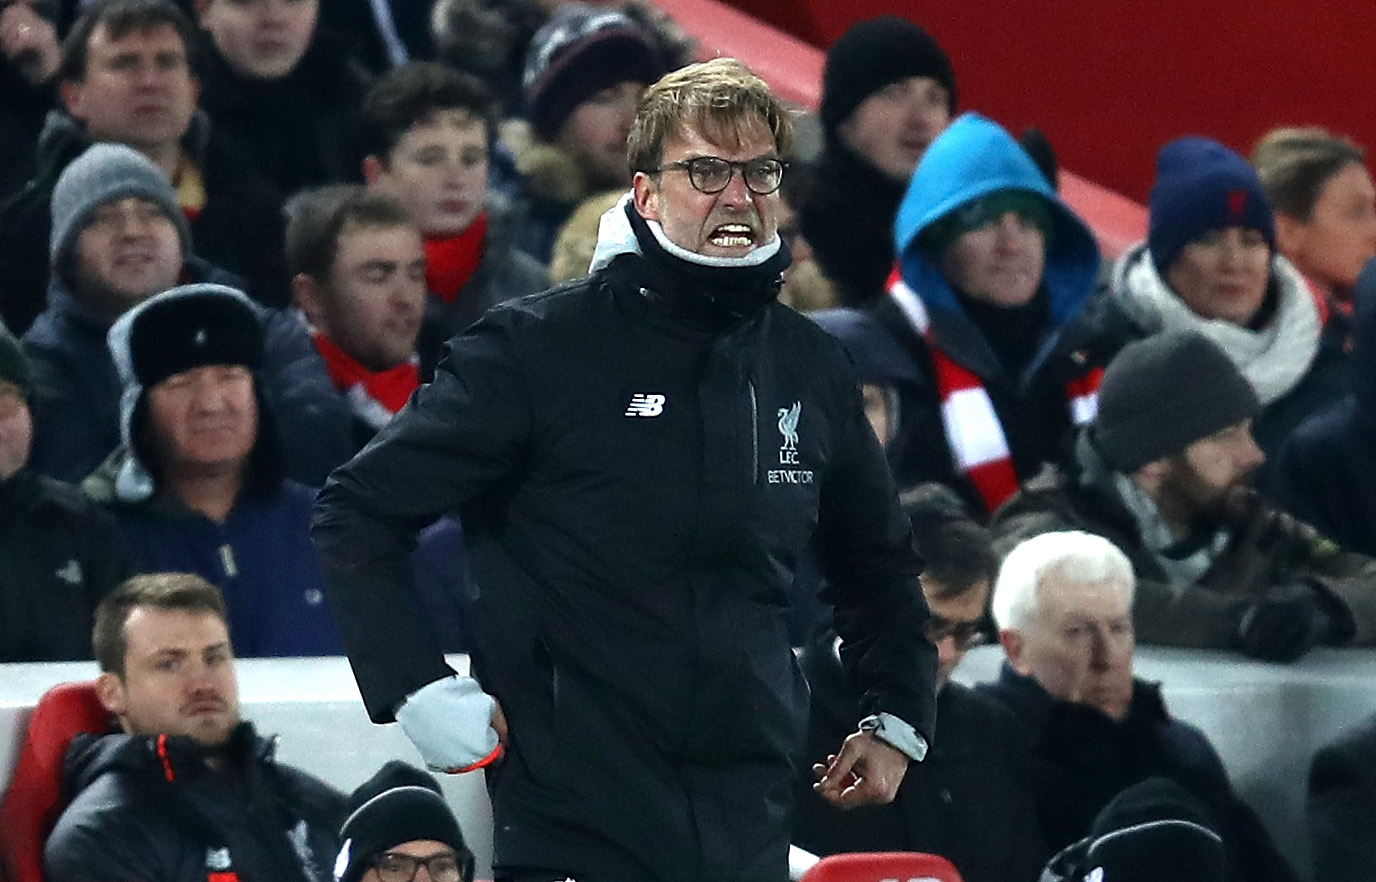 LIVERPOOL, ENGLAND - JANUARY 25: Jurgen Klopp, Manager of Liverpool reacts during the EFL Cup Semi-Final Second Leg match between Liverpool and Southampton at Anfield on January 25, 2017 in Liverpool, England. (Photo by Julian Finney/Getty Images)